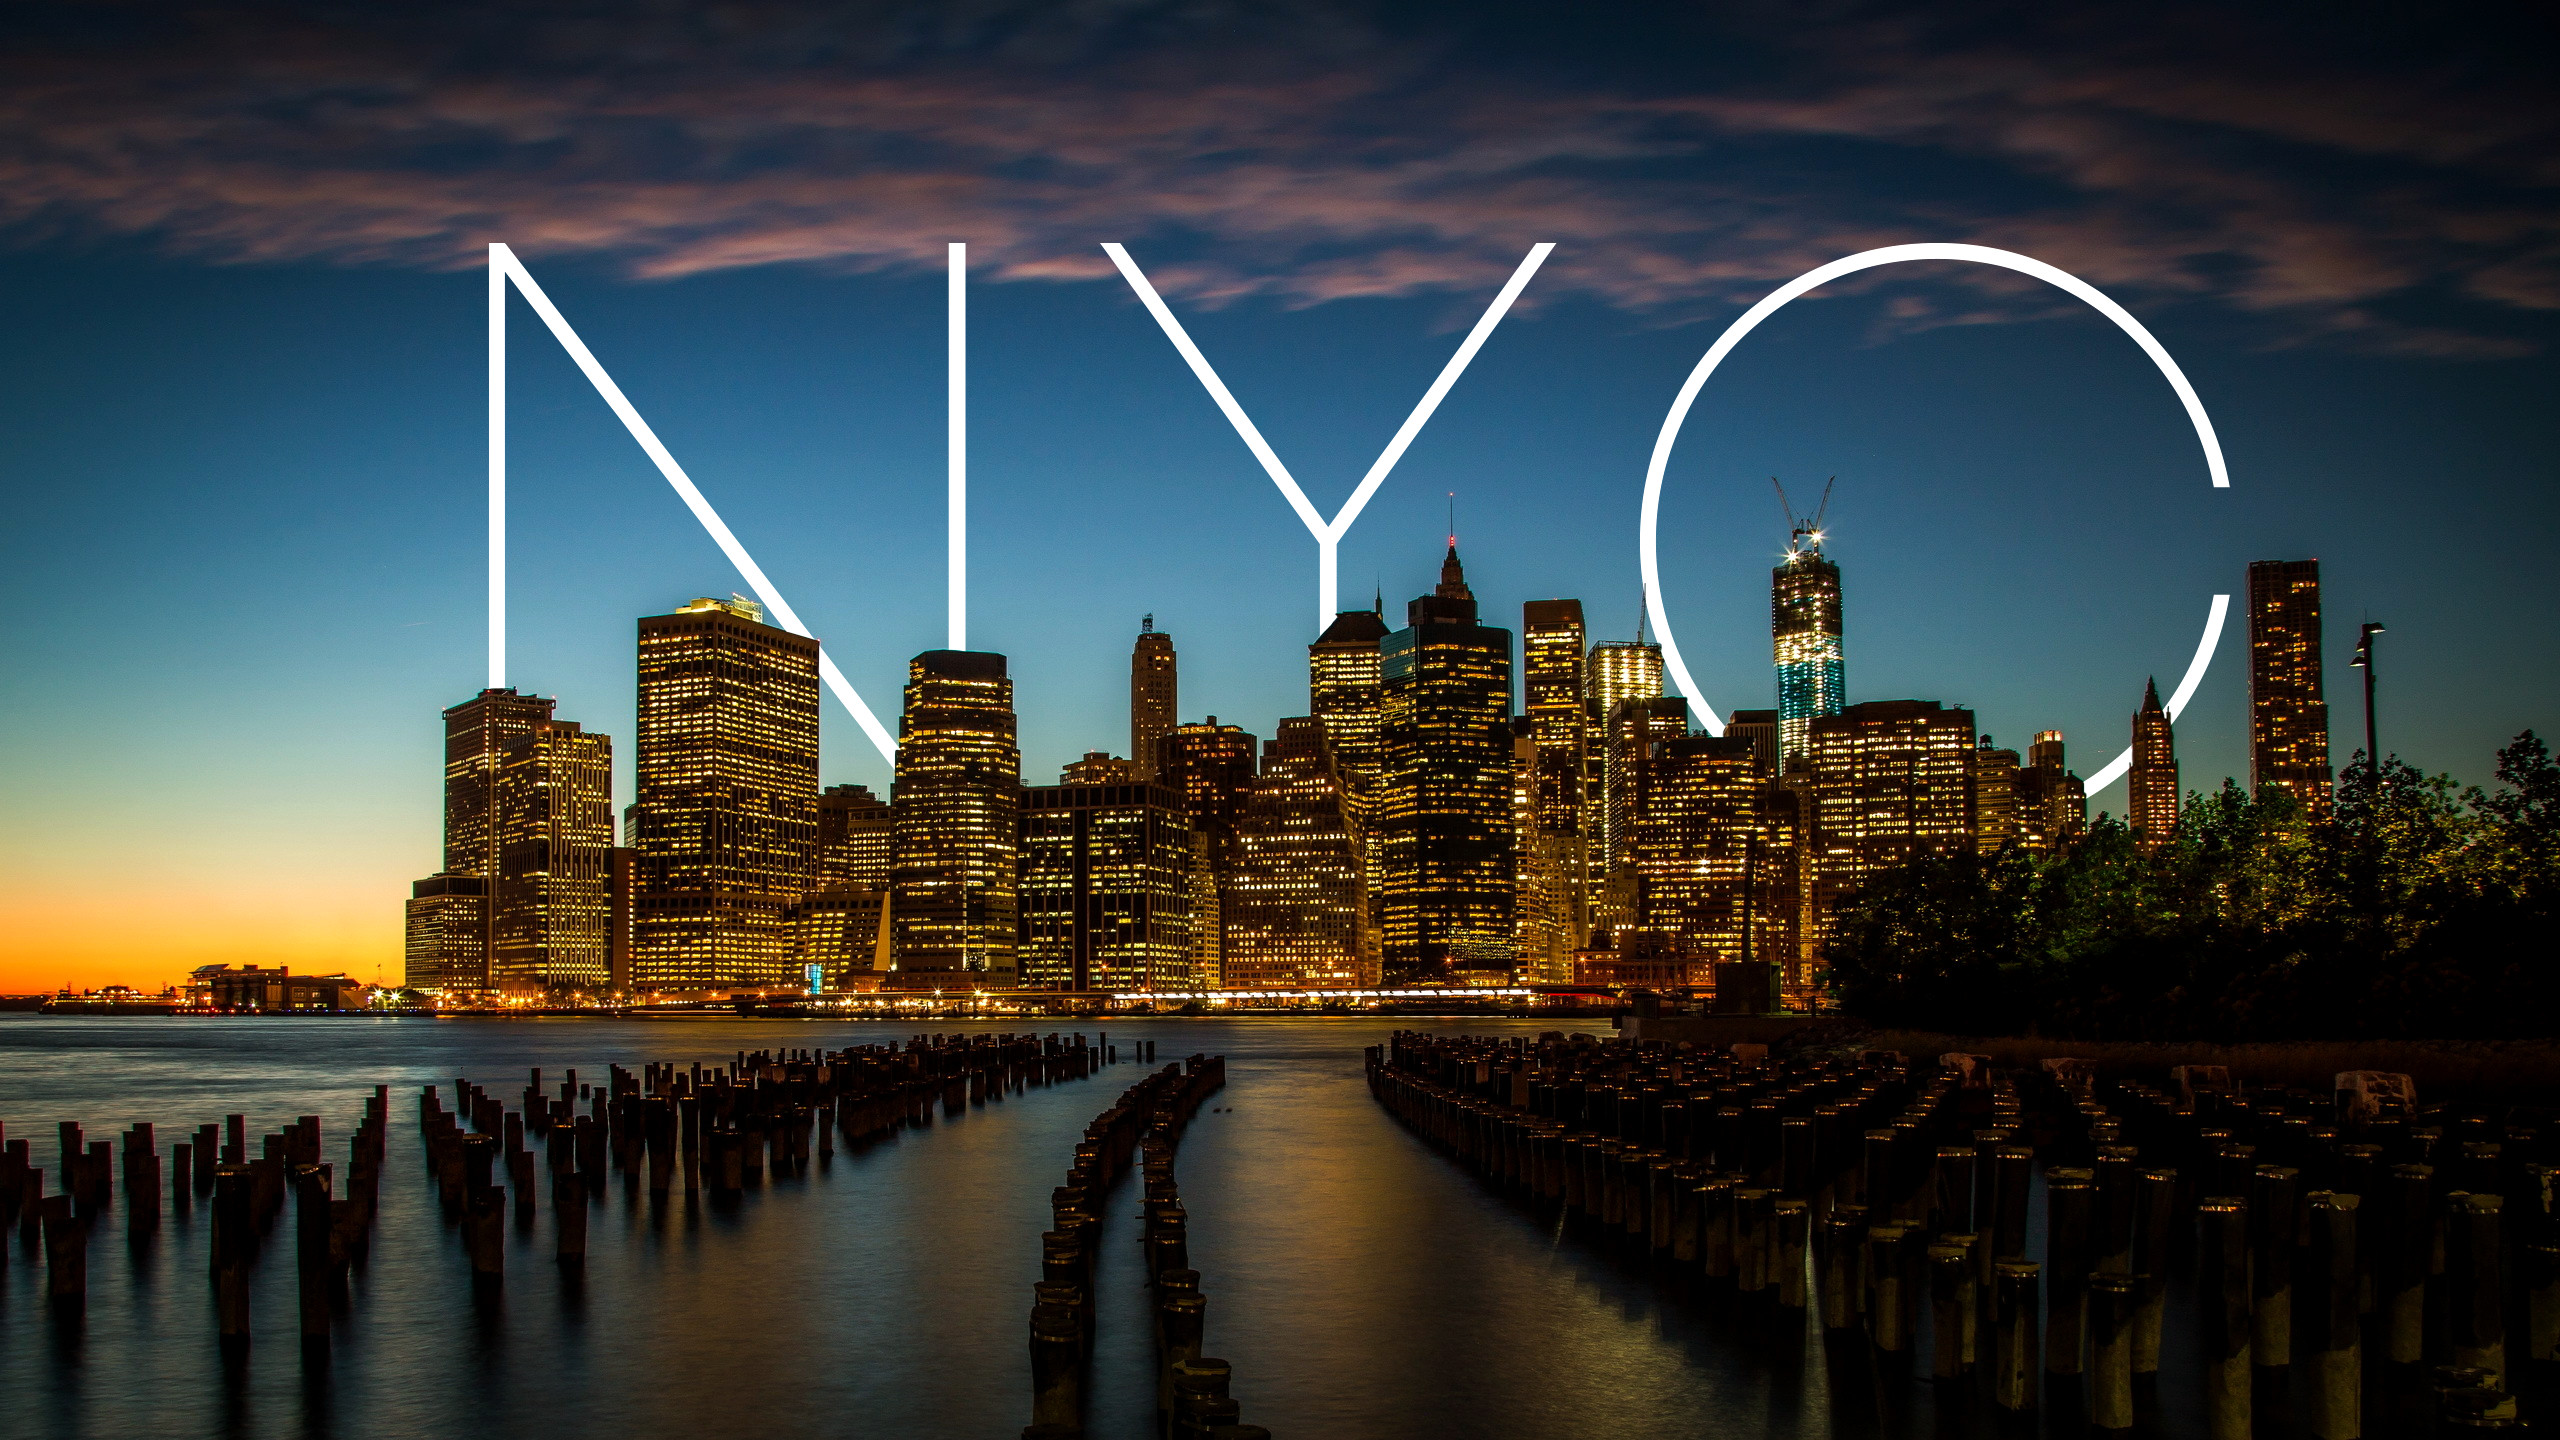 2560x1440 New York City Backgrounds HD Free Download Images.